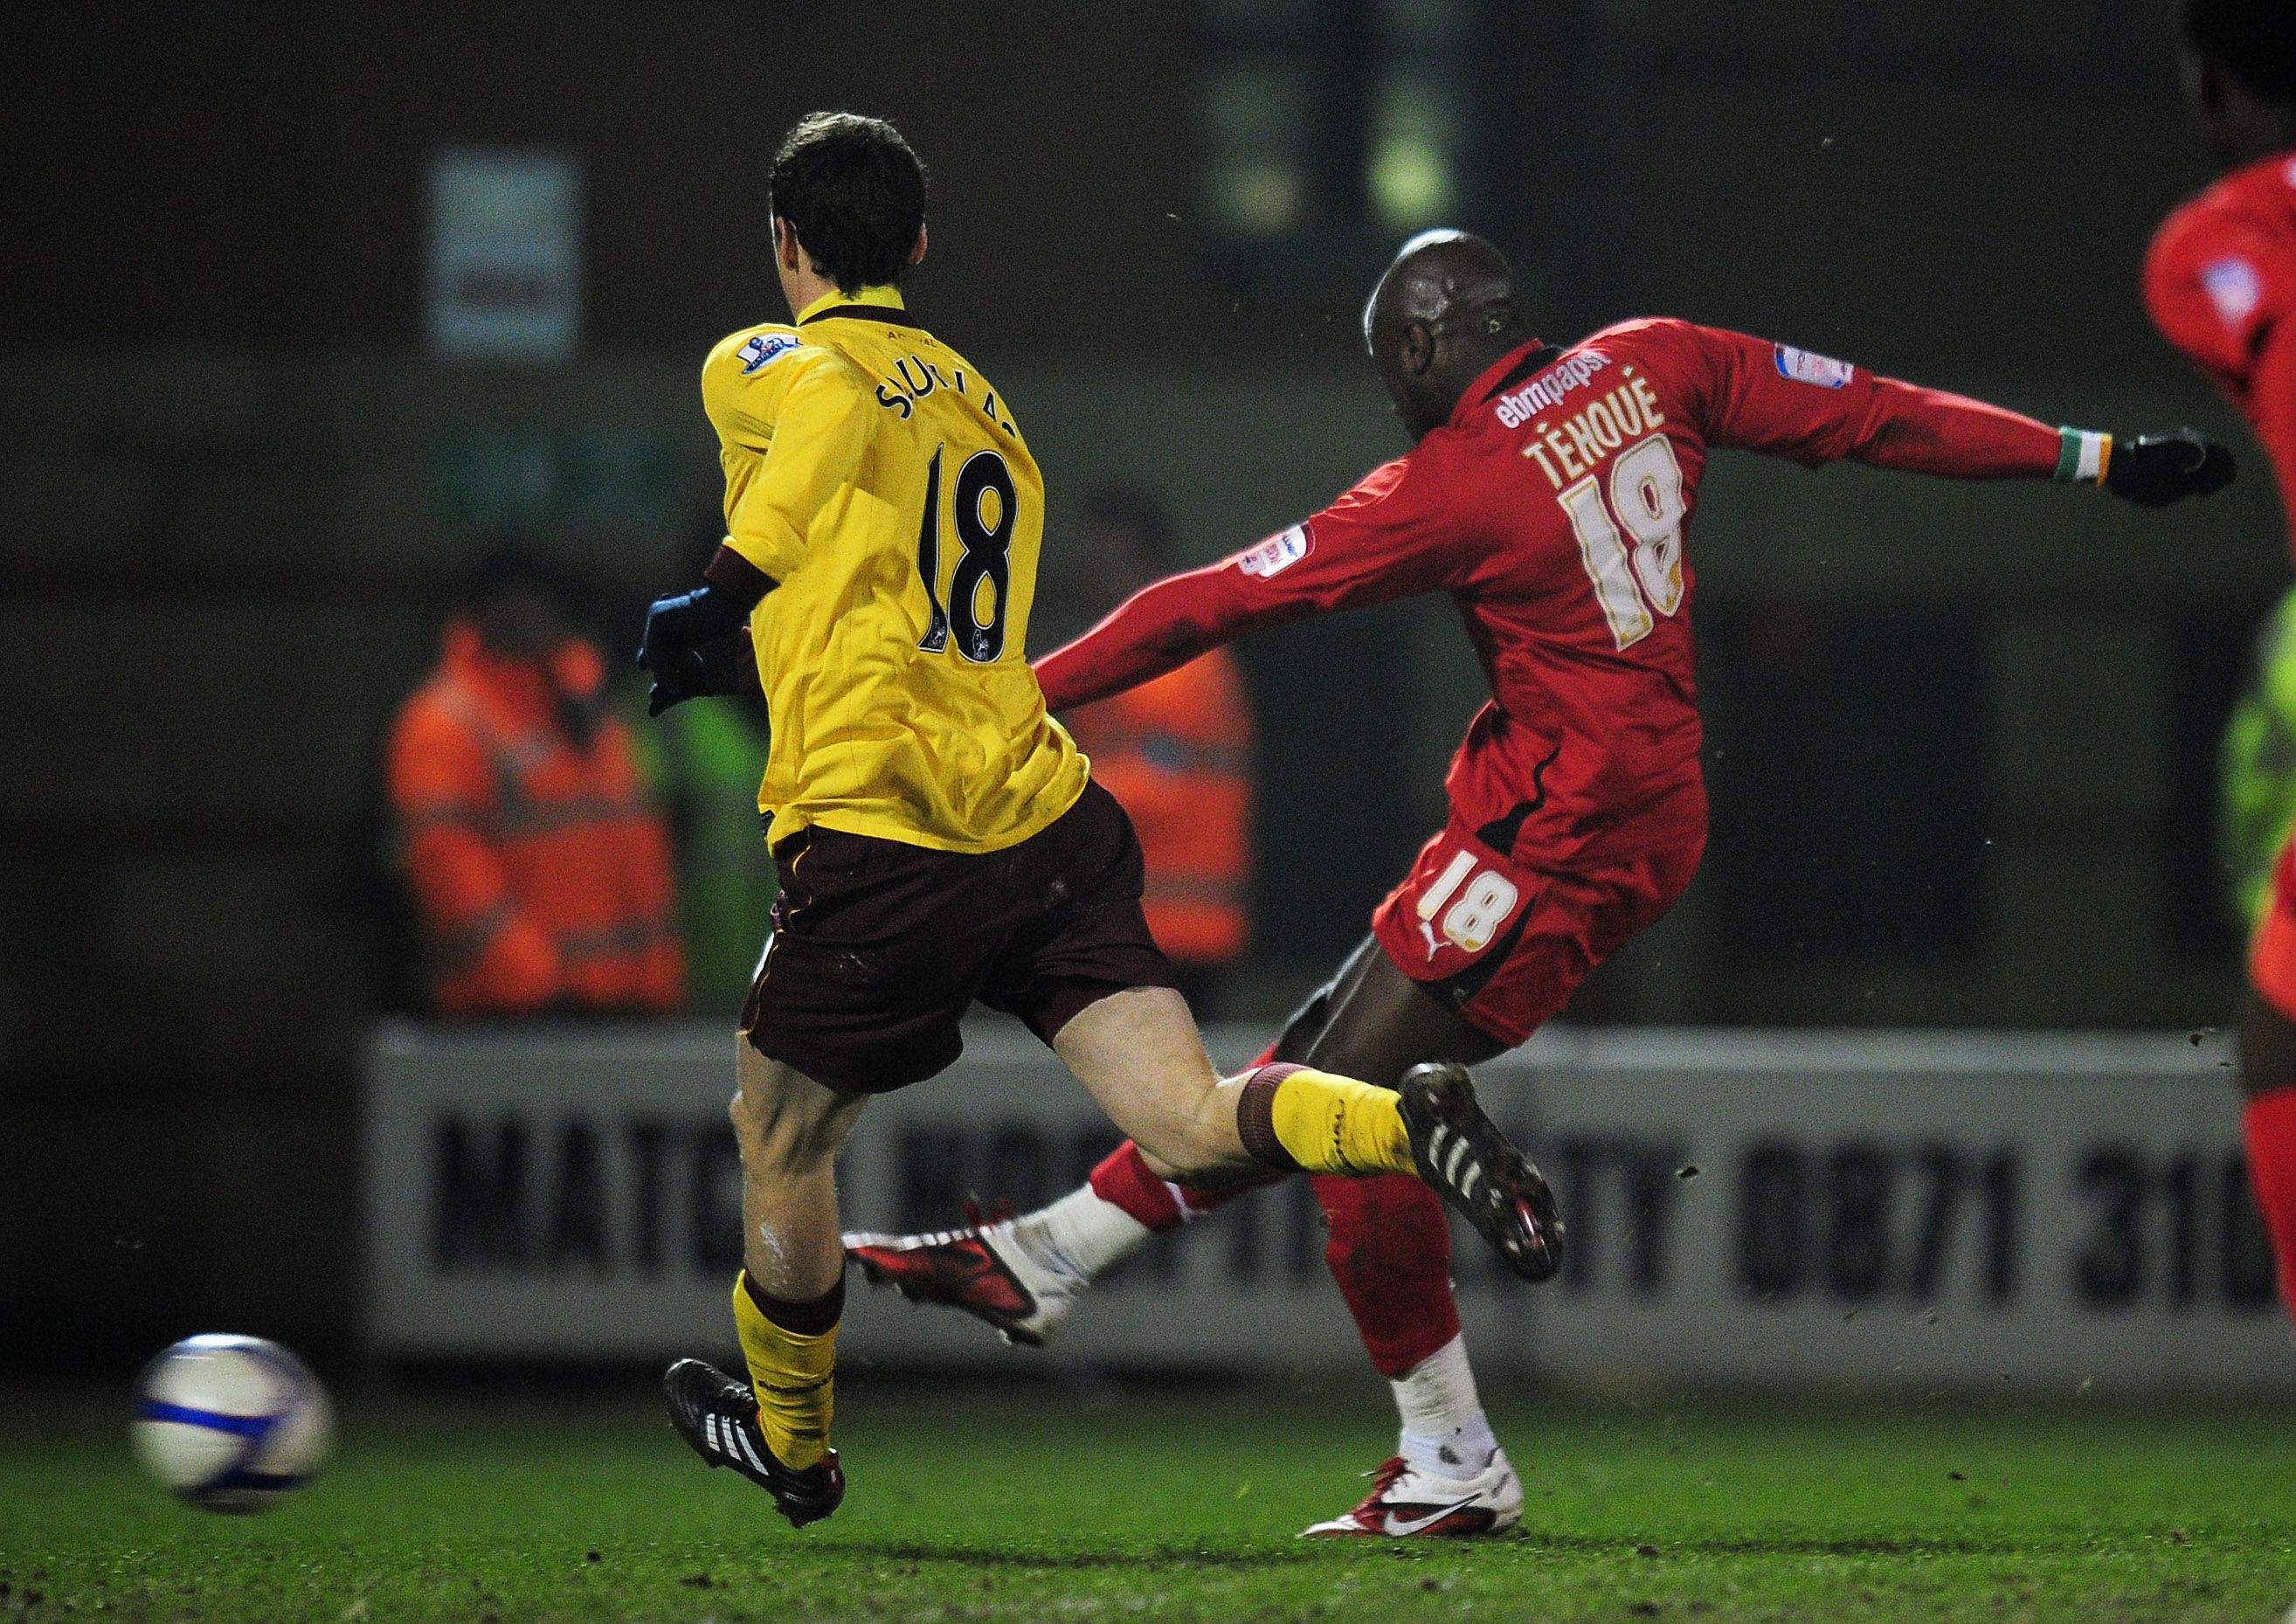 LONDON, ENGLAND - FEBRUARY 20:  Jonathan Tehoue of Leyton Orient shoots to score the equaliser during the FA Cup sponsored by E.ON 5th Round match between Leyton Orient and Arsenal at the Matchroom Stadium on February 20, 2011 in London, England.  (Photo